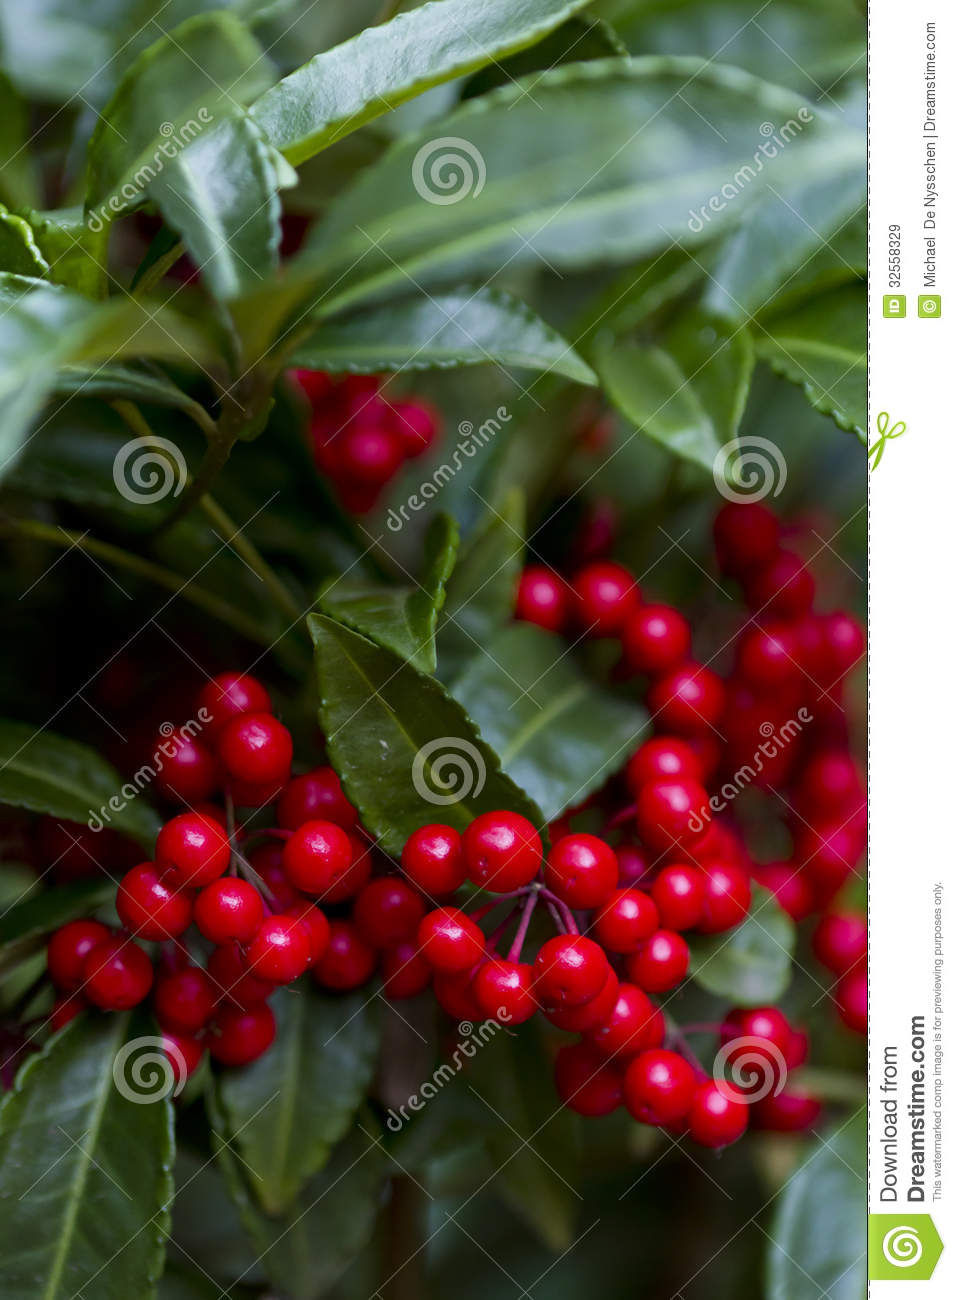 ... Plant With Red Berries Royalty Free Stock Images - Image: 32558329